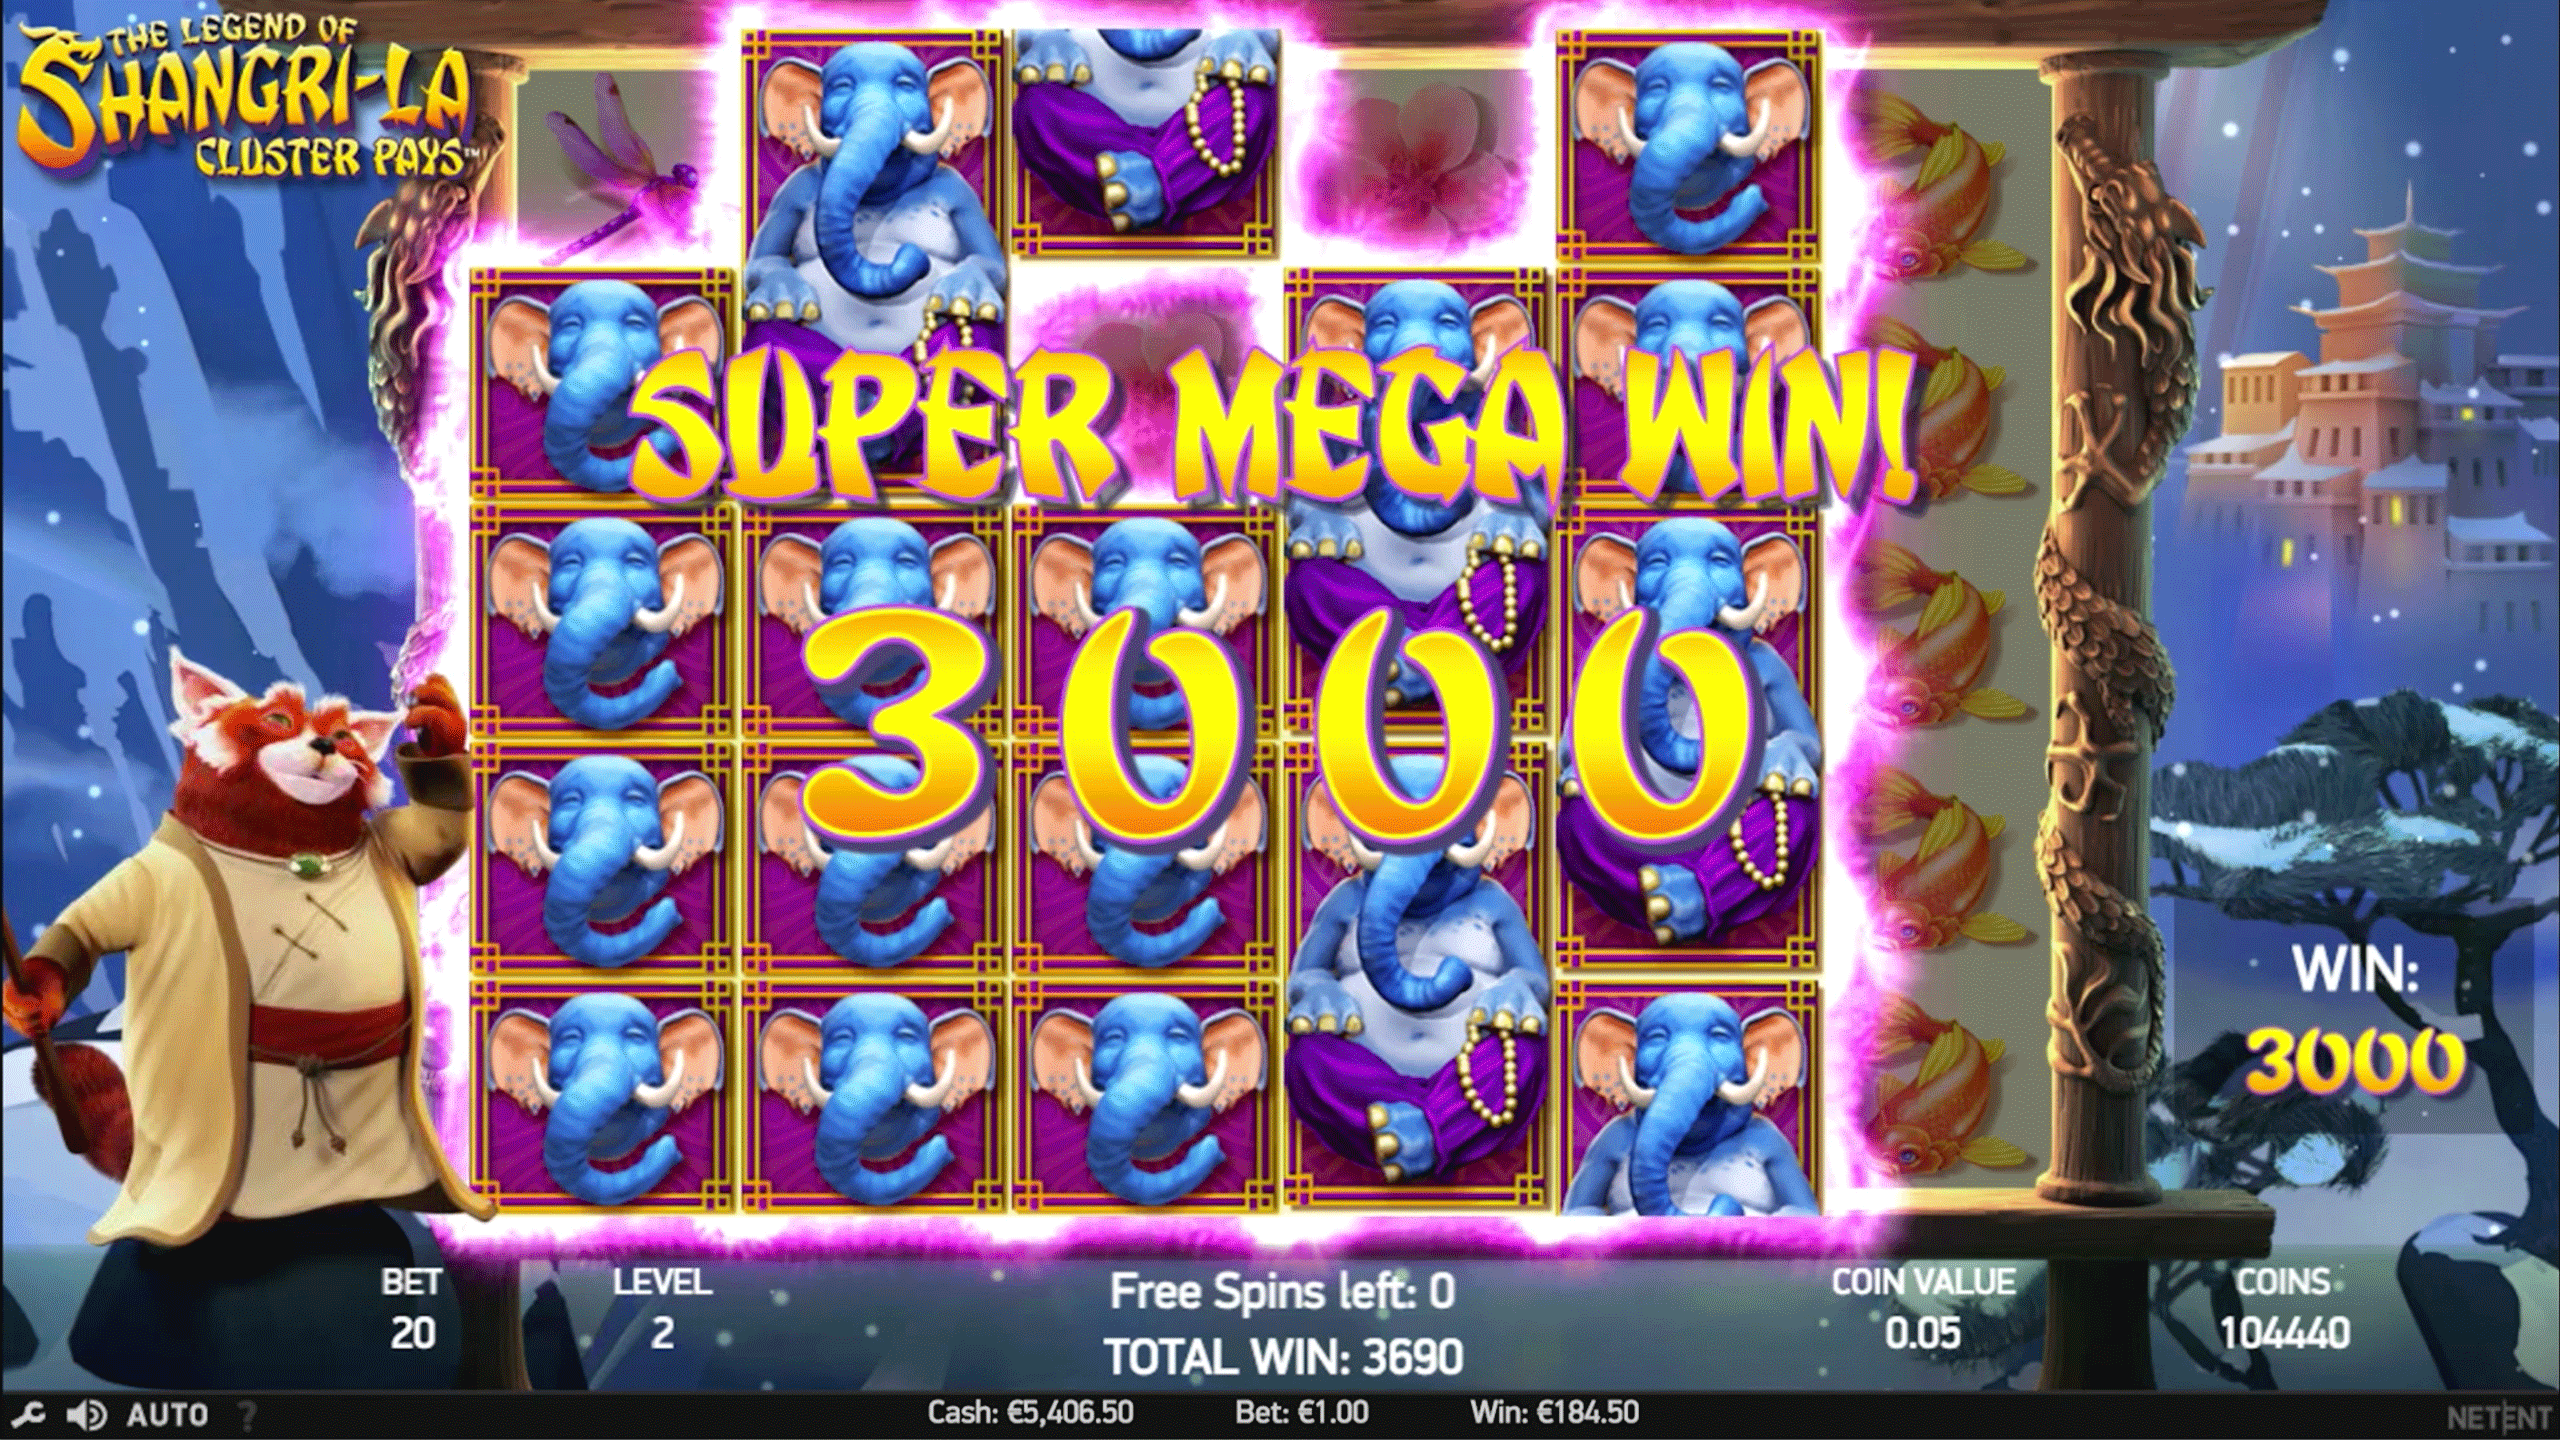 The Legend of Shangri-La Slots UK